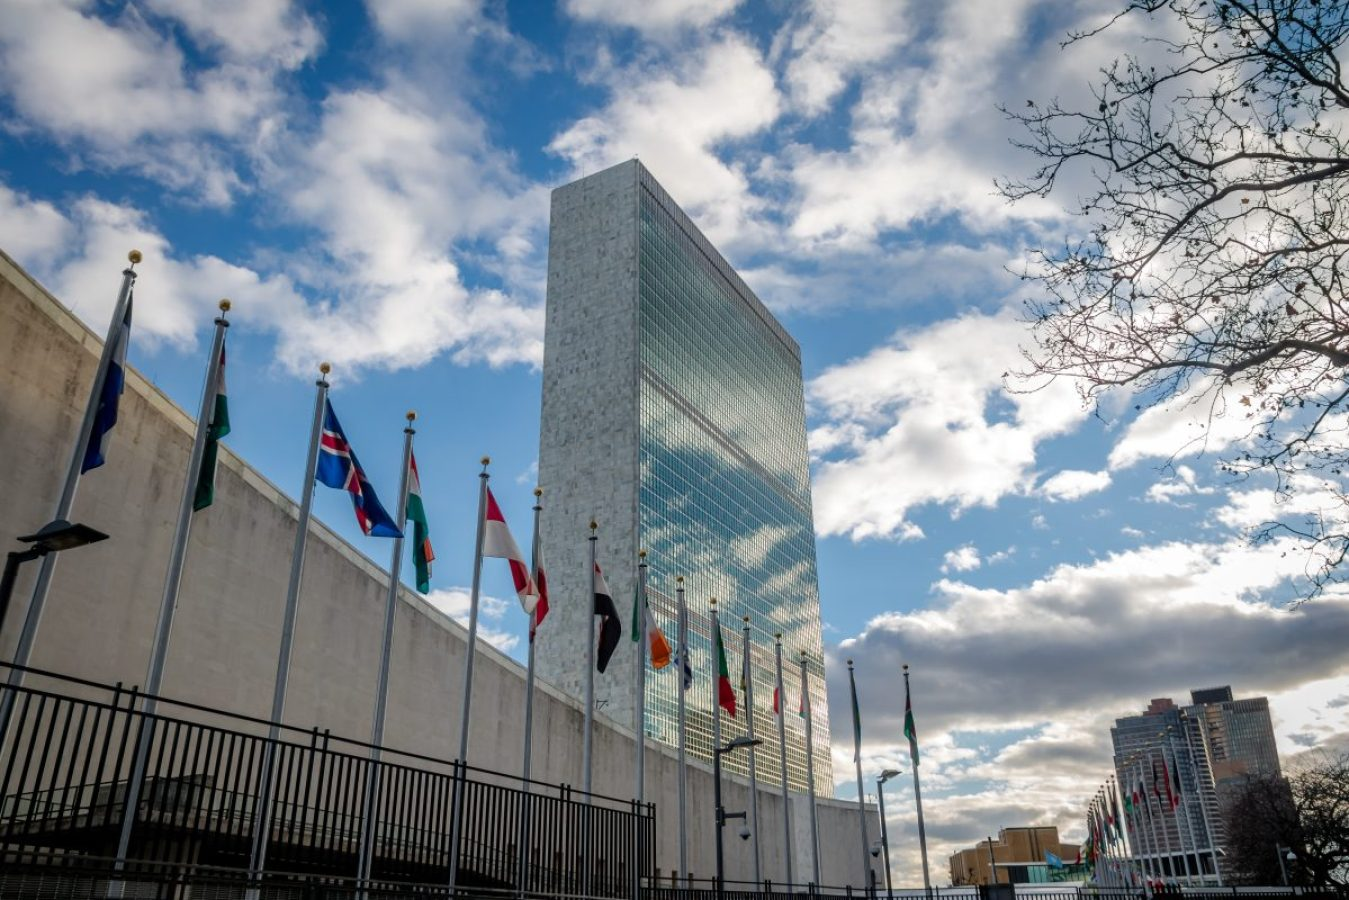 Humanitarian aid: More to be in need, UN warns. Caption: The United Nations headquarters in New York. Image credit: Diego Grandi / 123rf